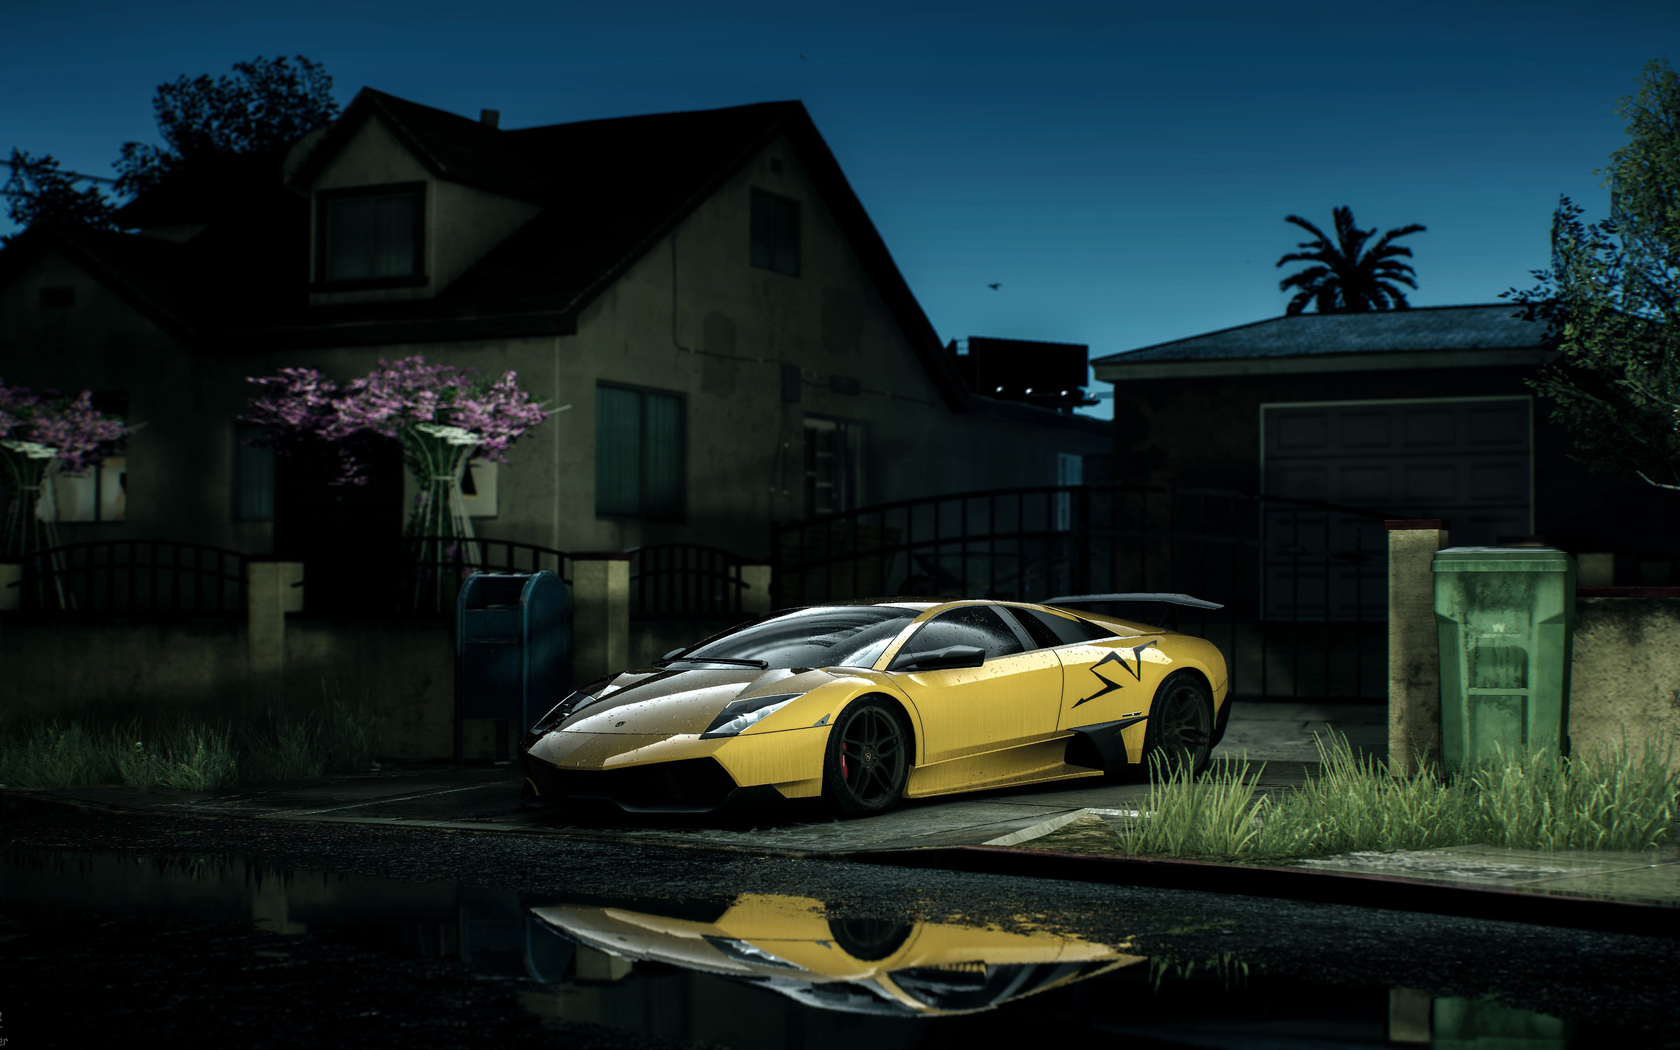 lamborghini-need-for-speed-payback-game-8k-e9.jpg